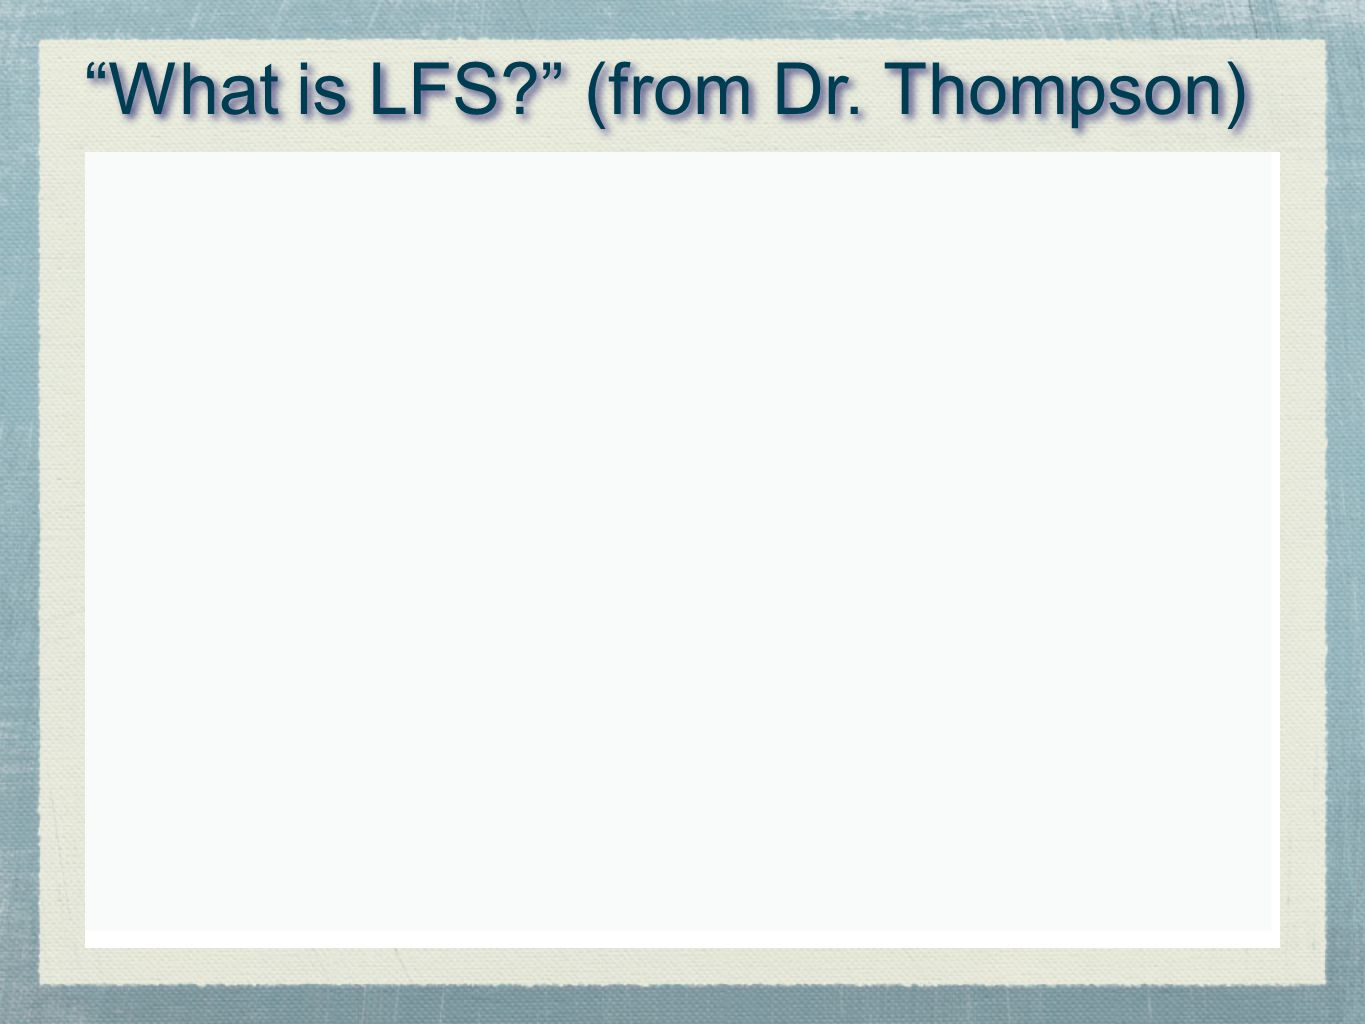 What is LFS (from Dr. Thompson)